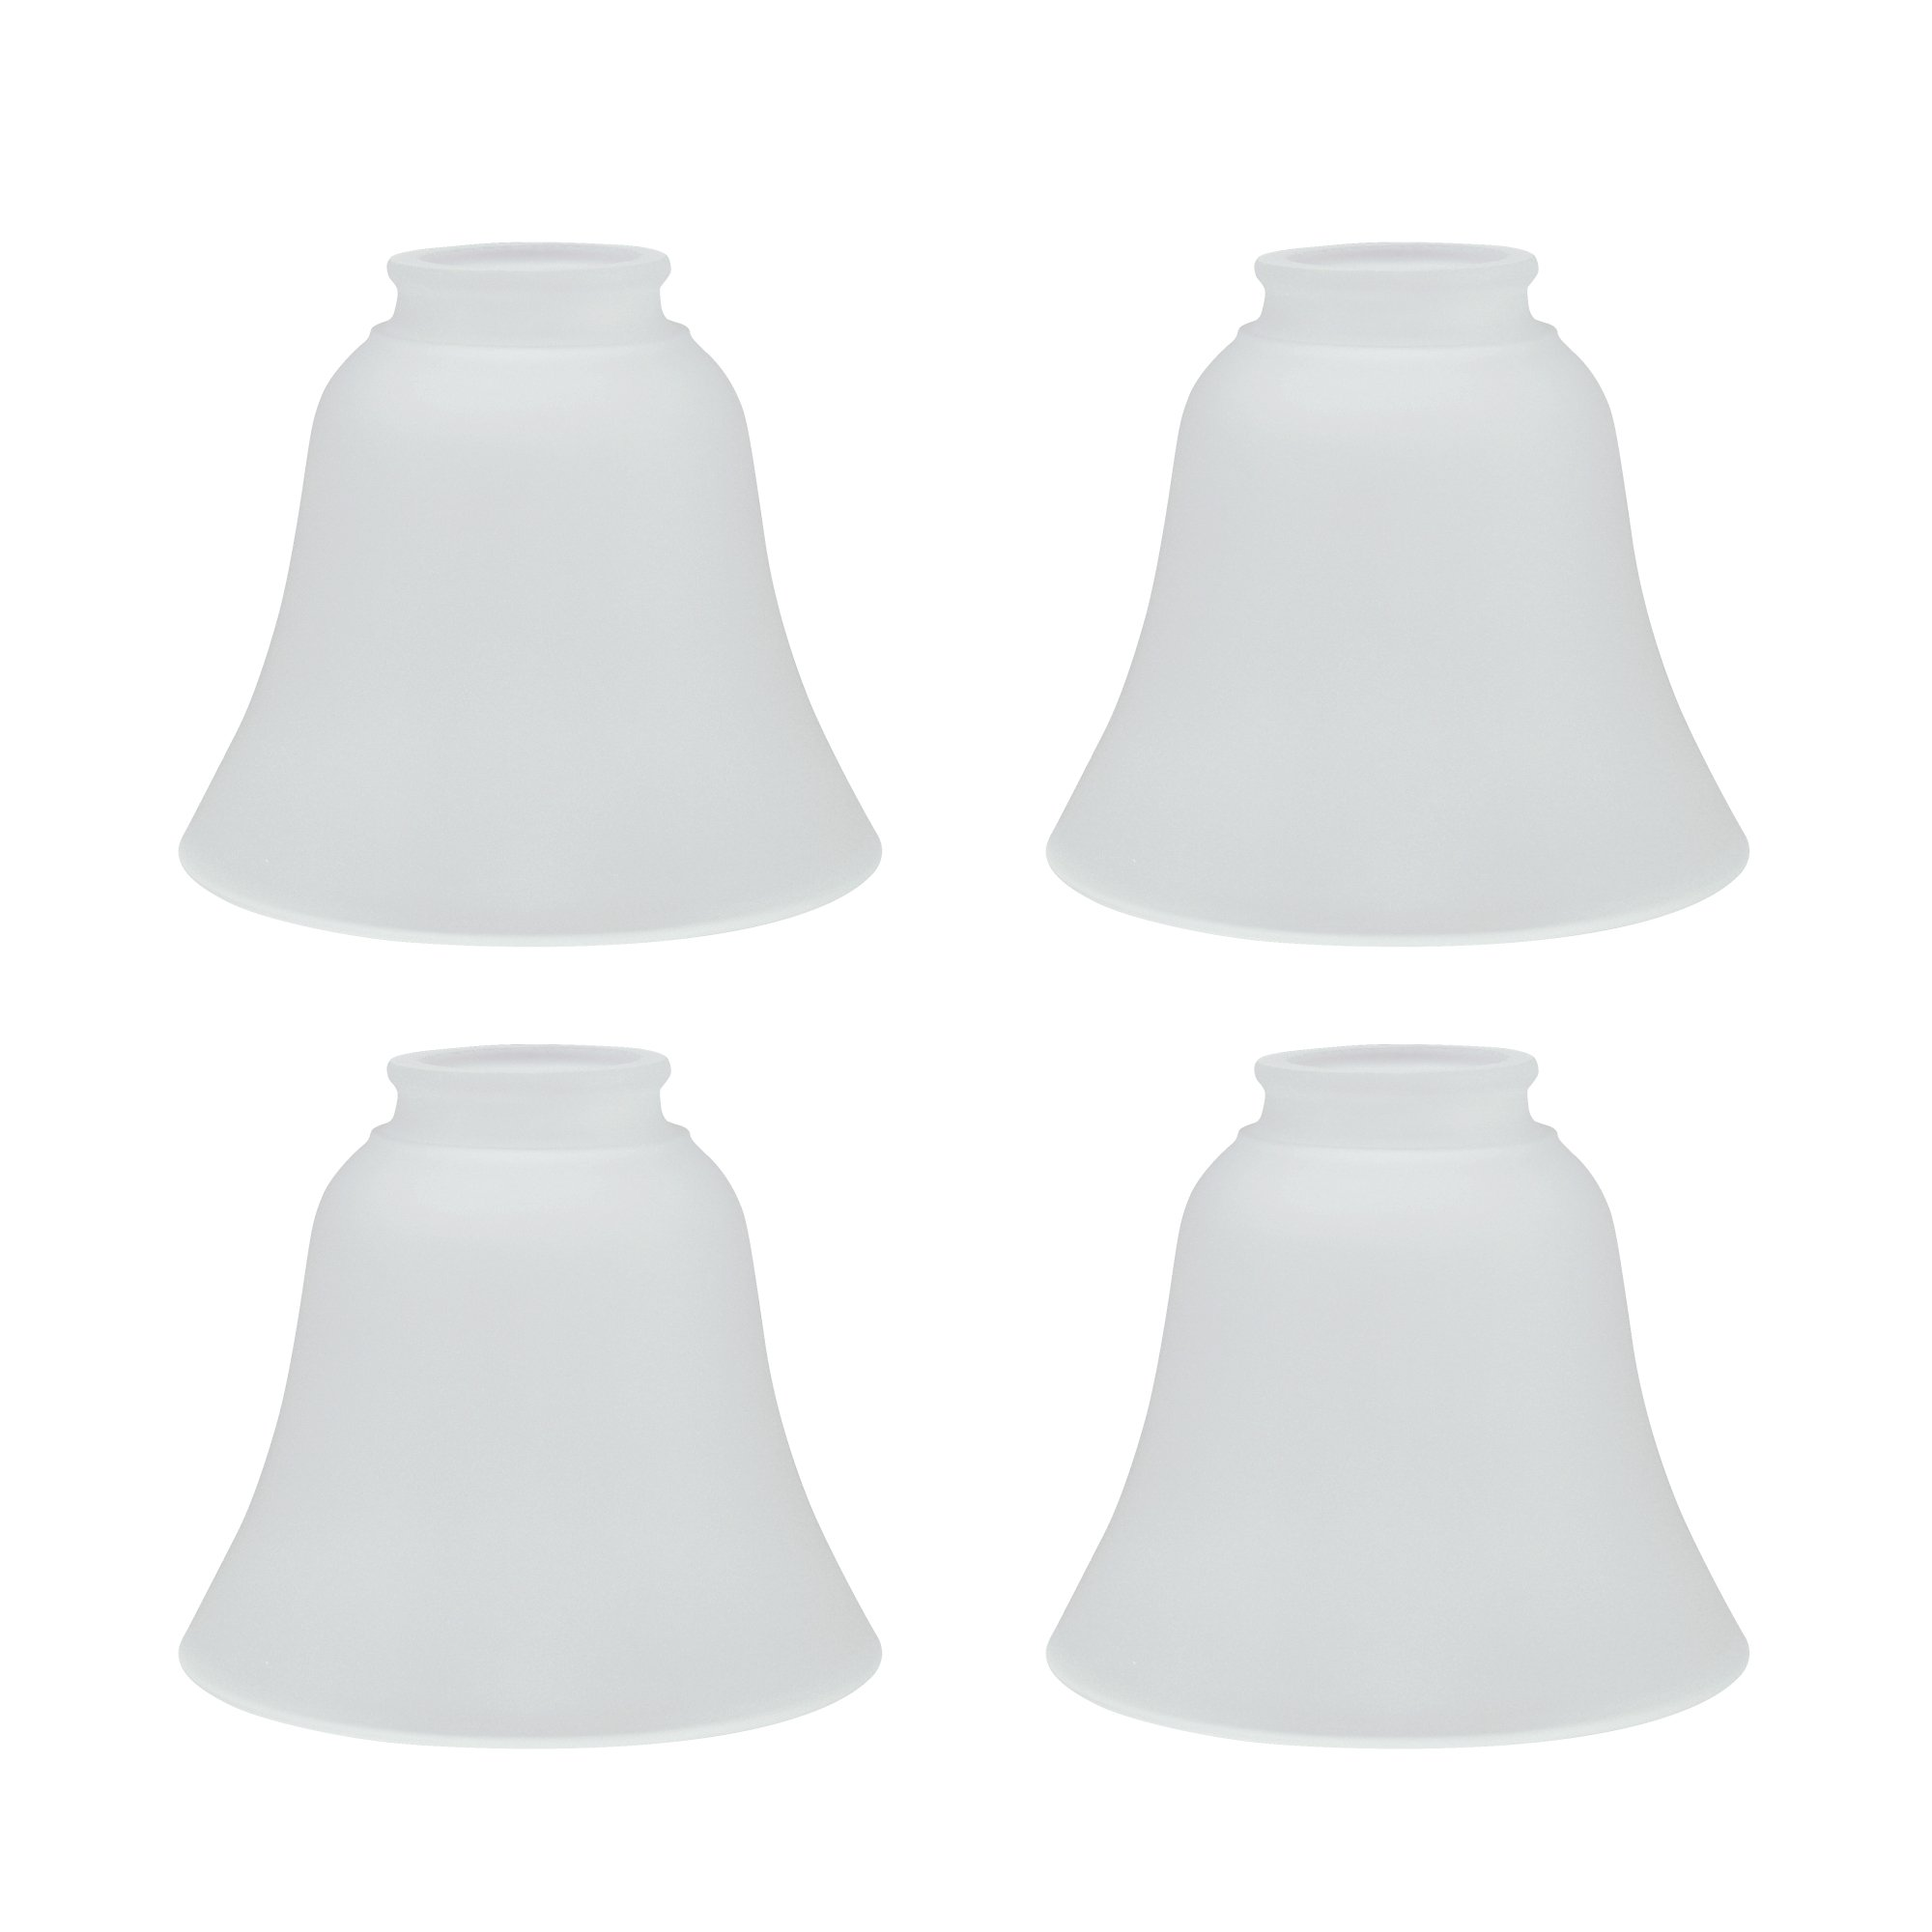 Aspen Creative 23026-4 Transitional Style Replacement Glass Shade, Frosted by Aspen Creative (Image #1)